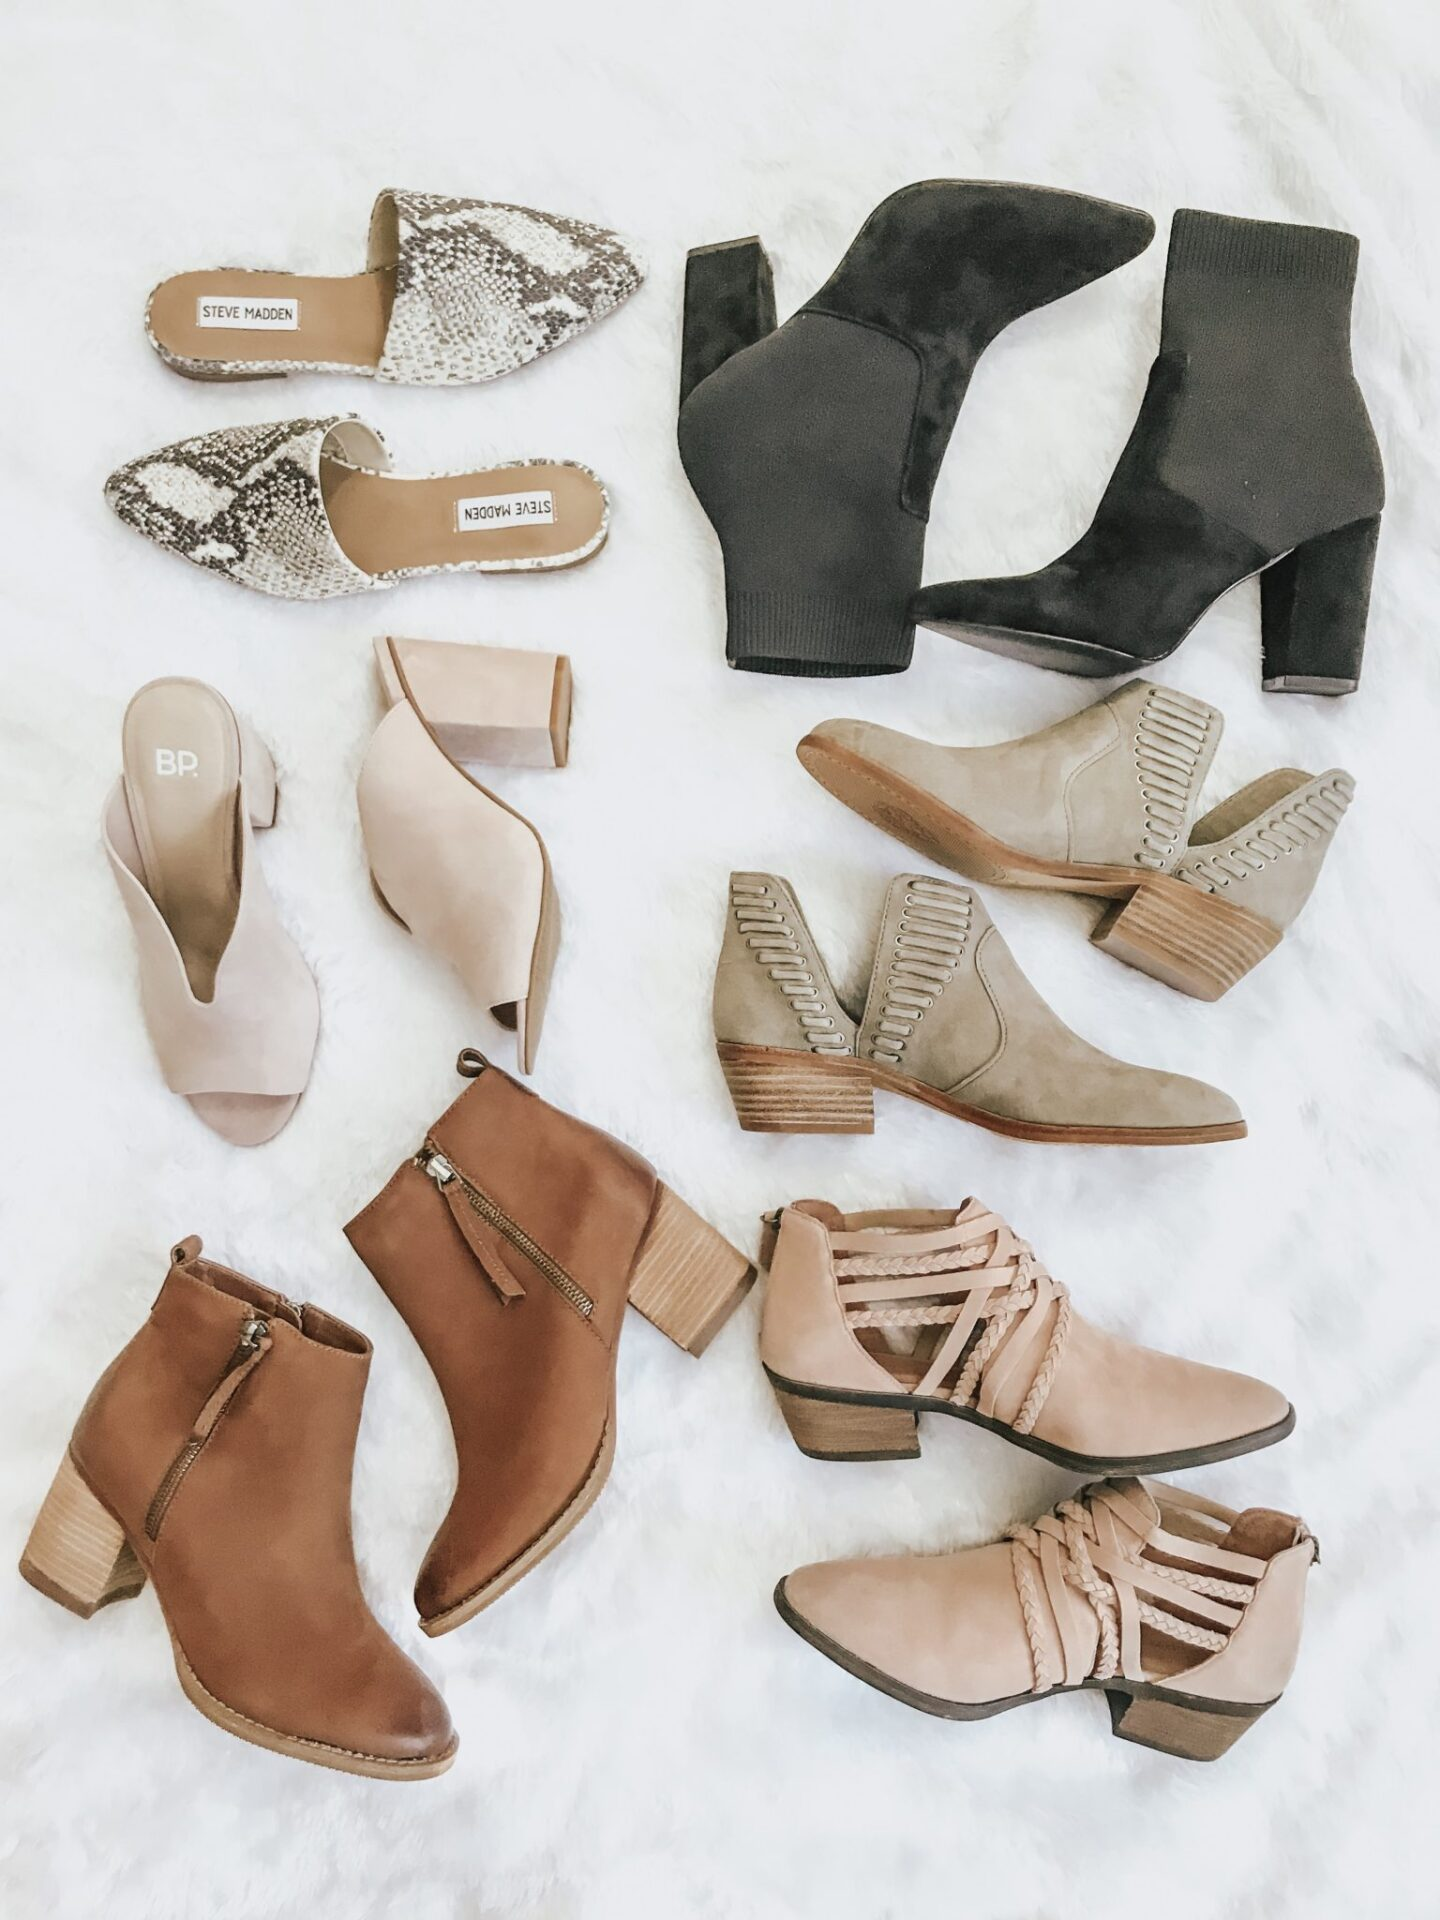 Nordstrom Anniversary Sale 2018 – Top Shoe Picks